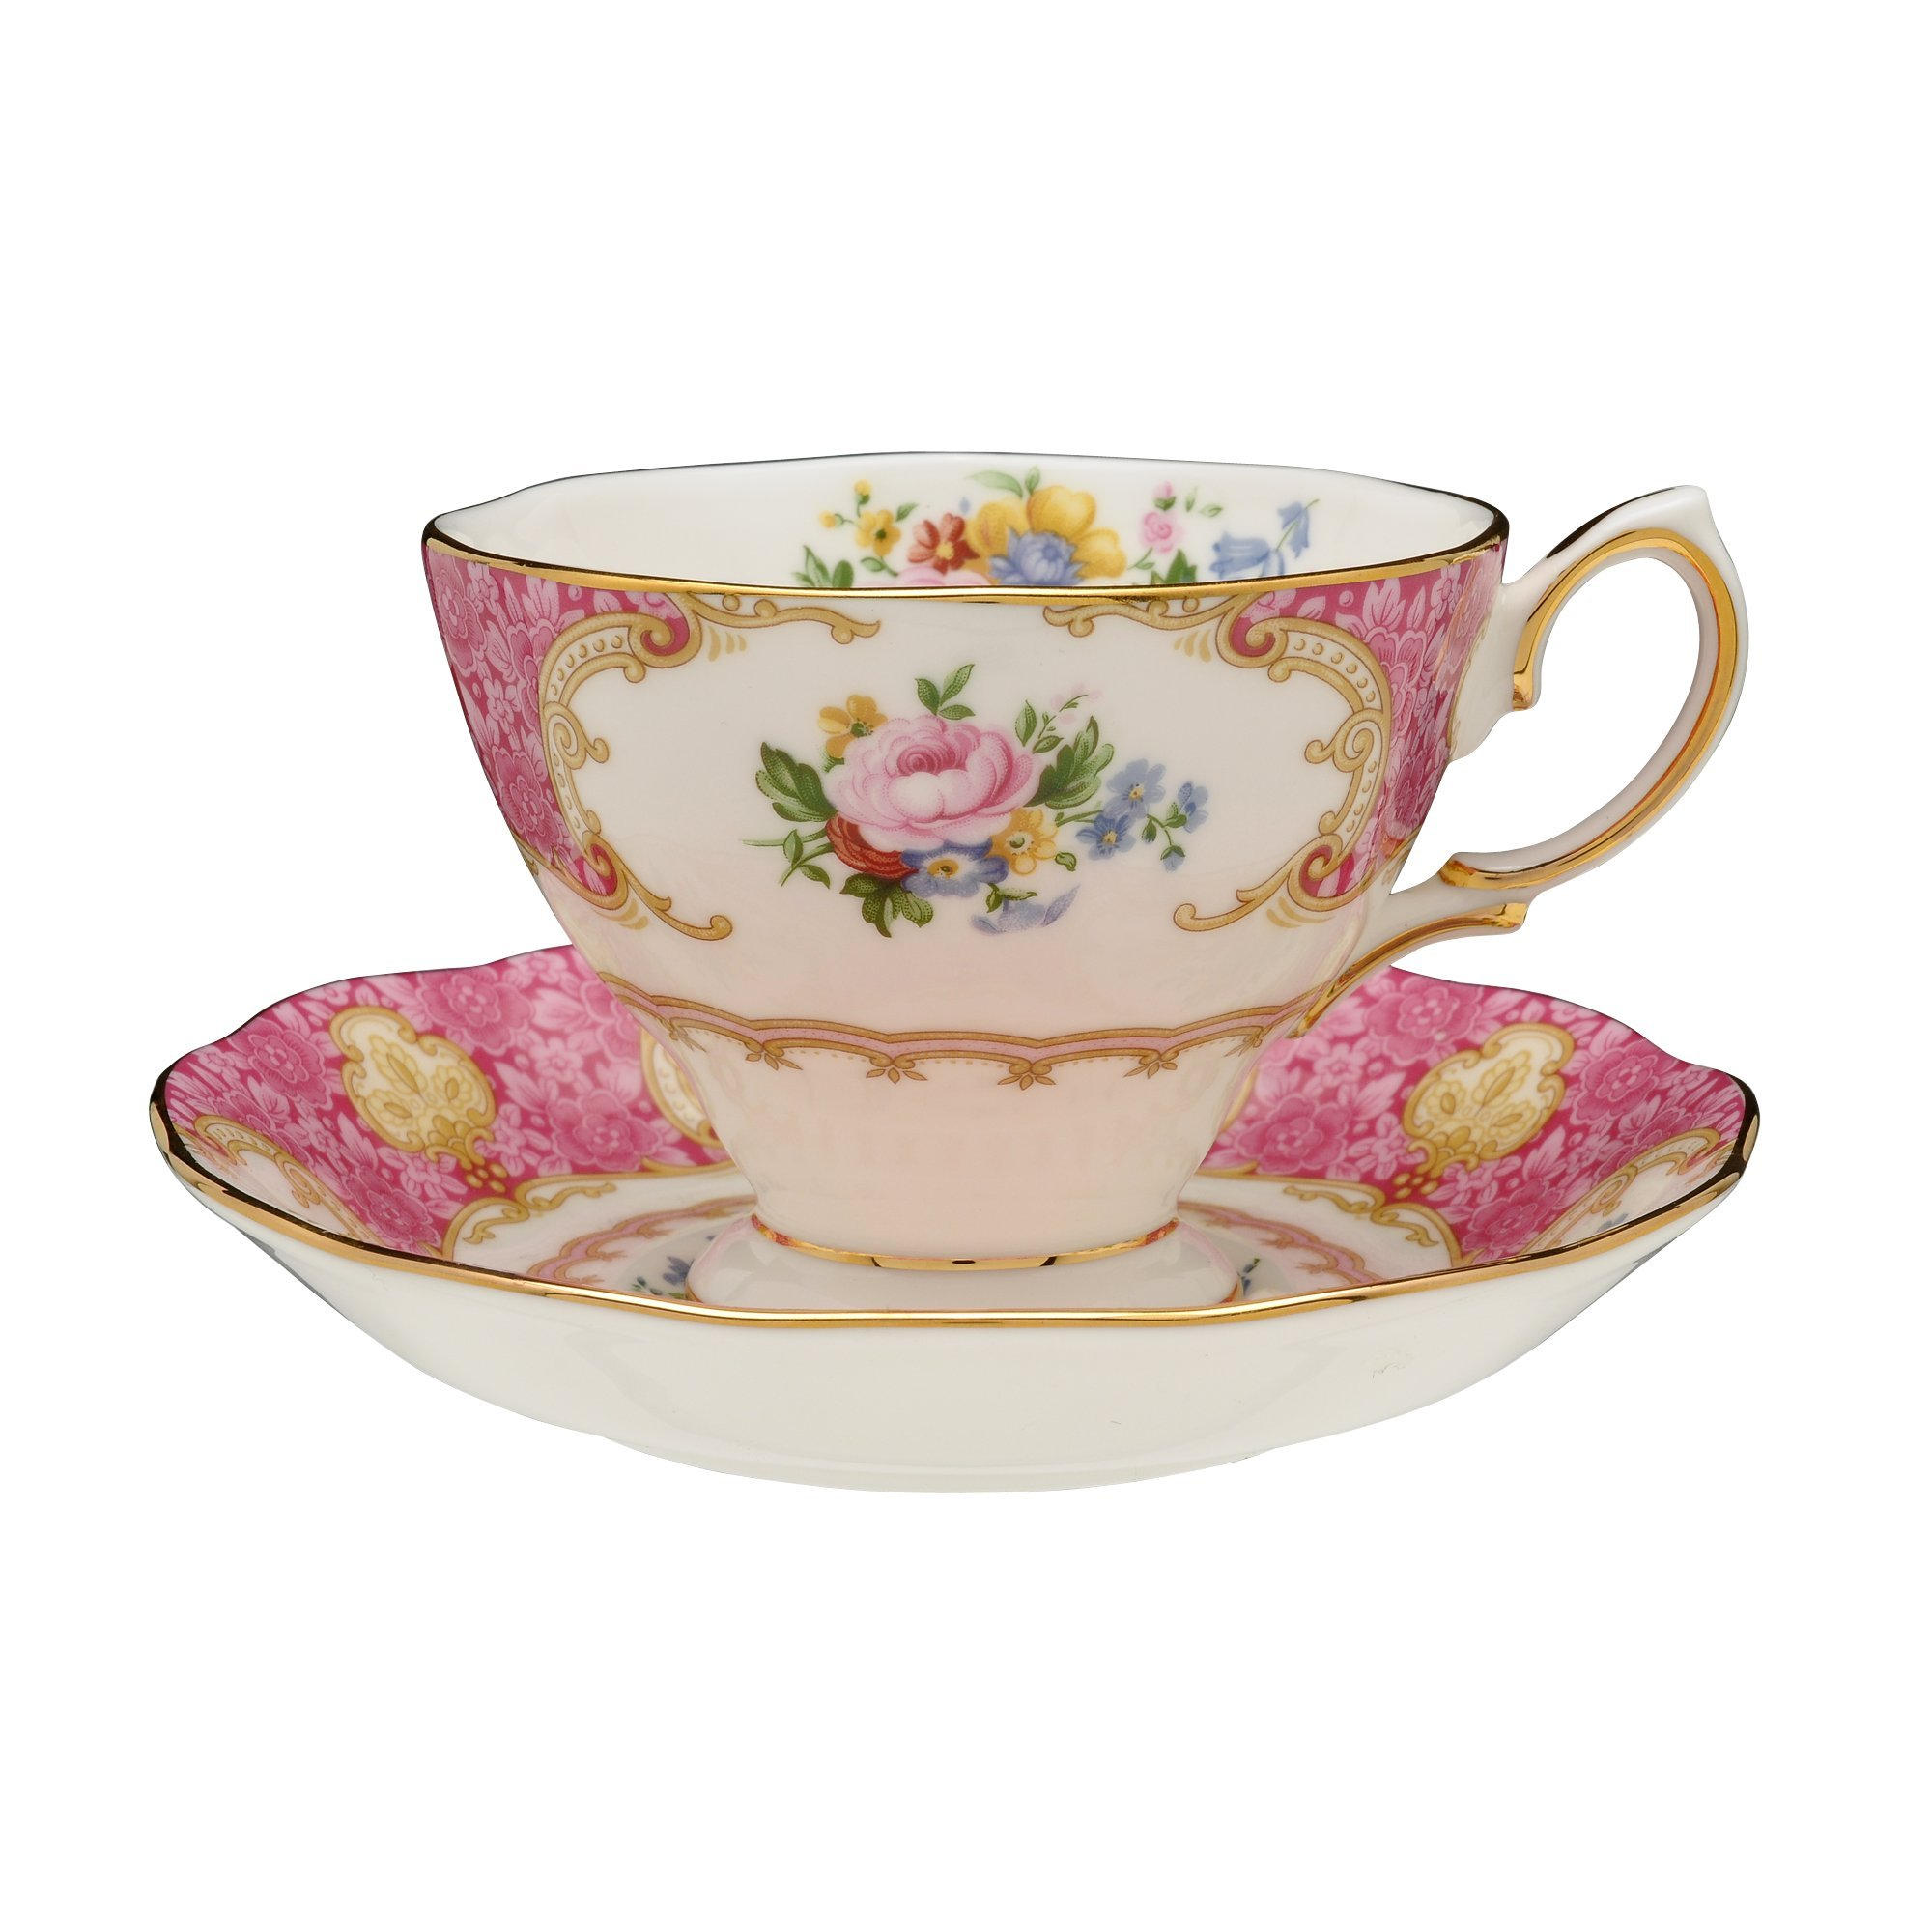 Royal Albert Lady Carlyle Teacup & Saucer Teacup and saucer, 6.85 ounces, Multicolored Floral Print